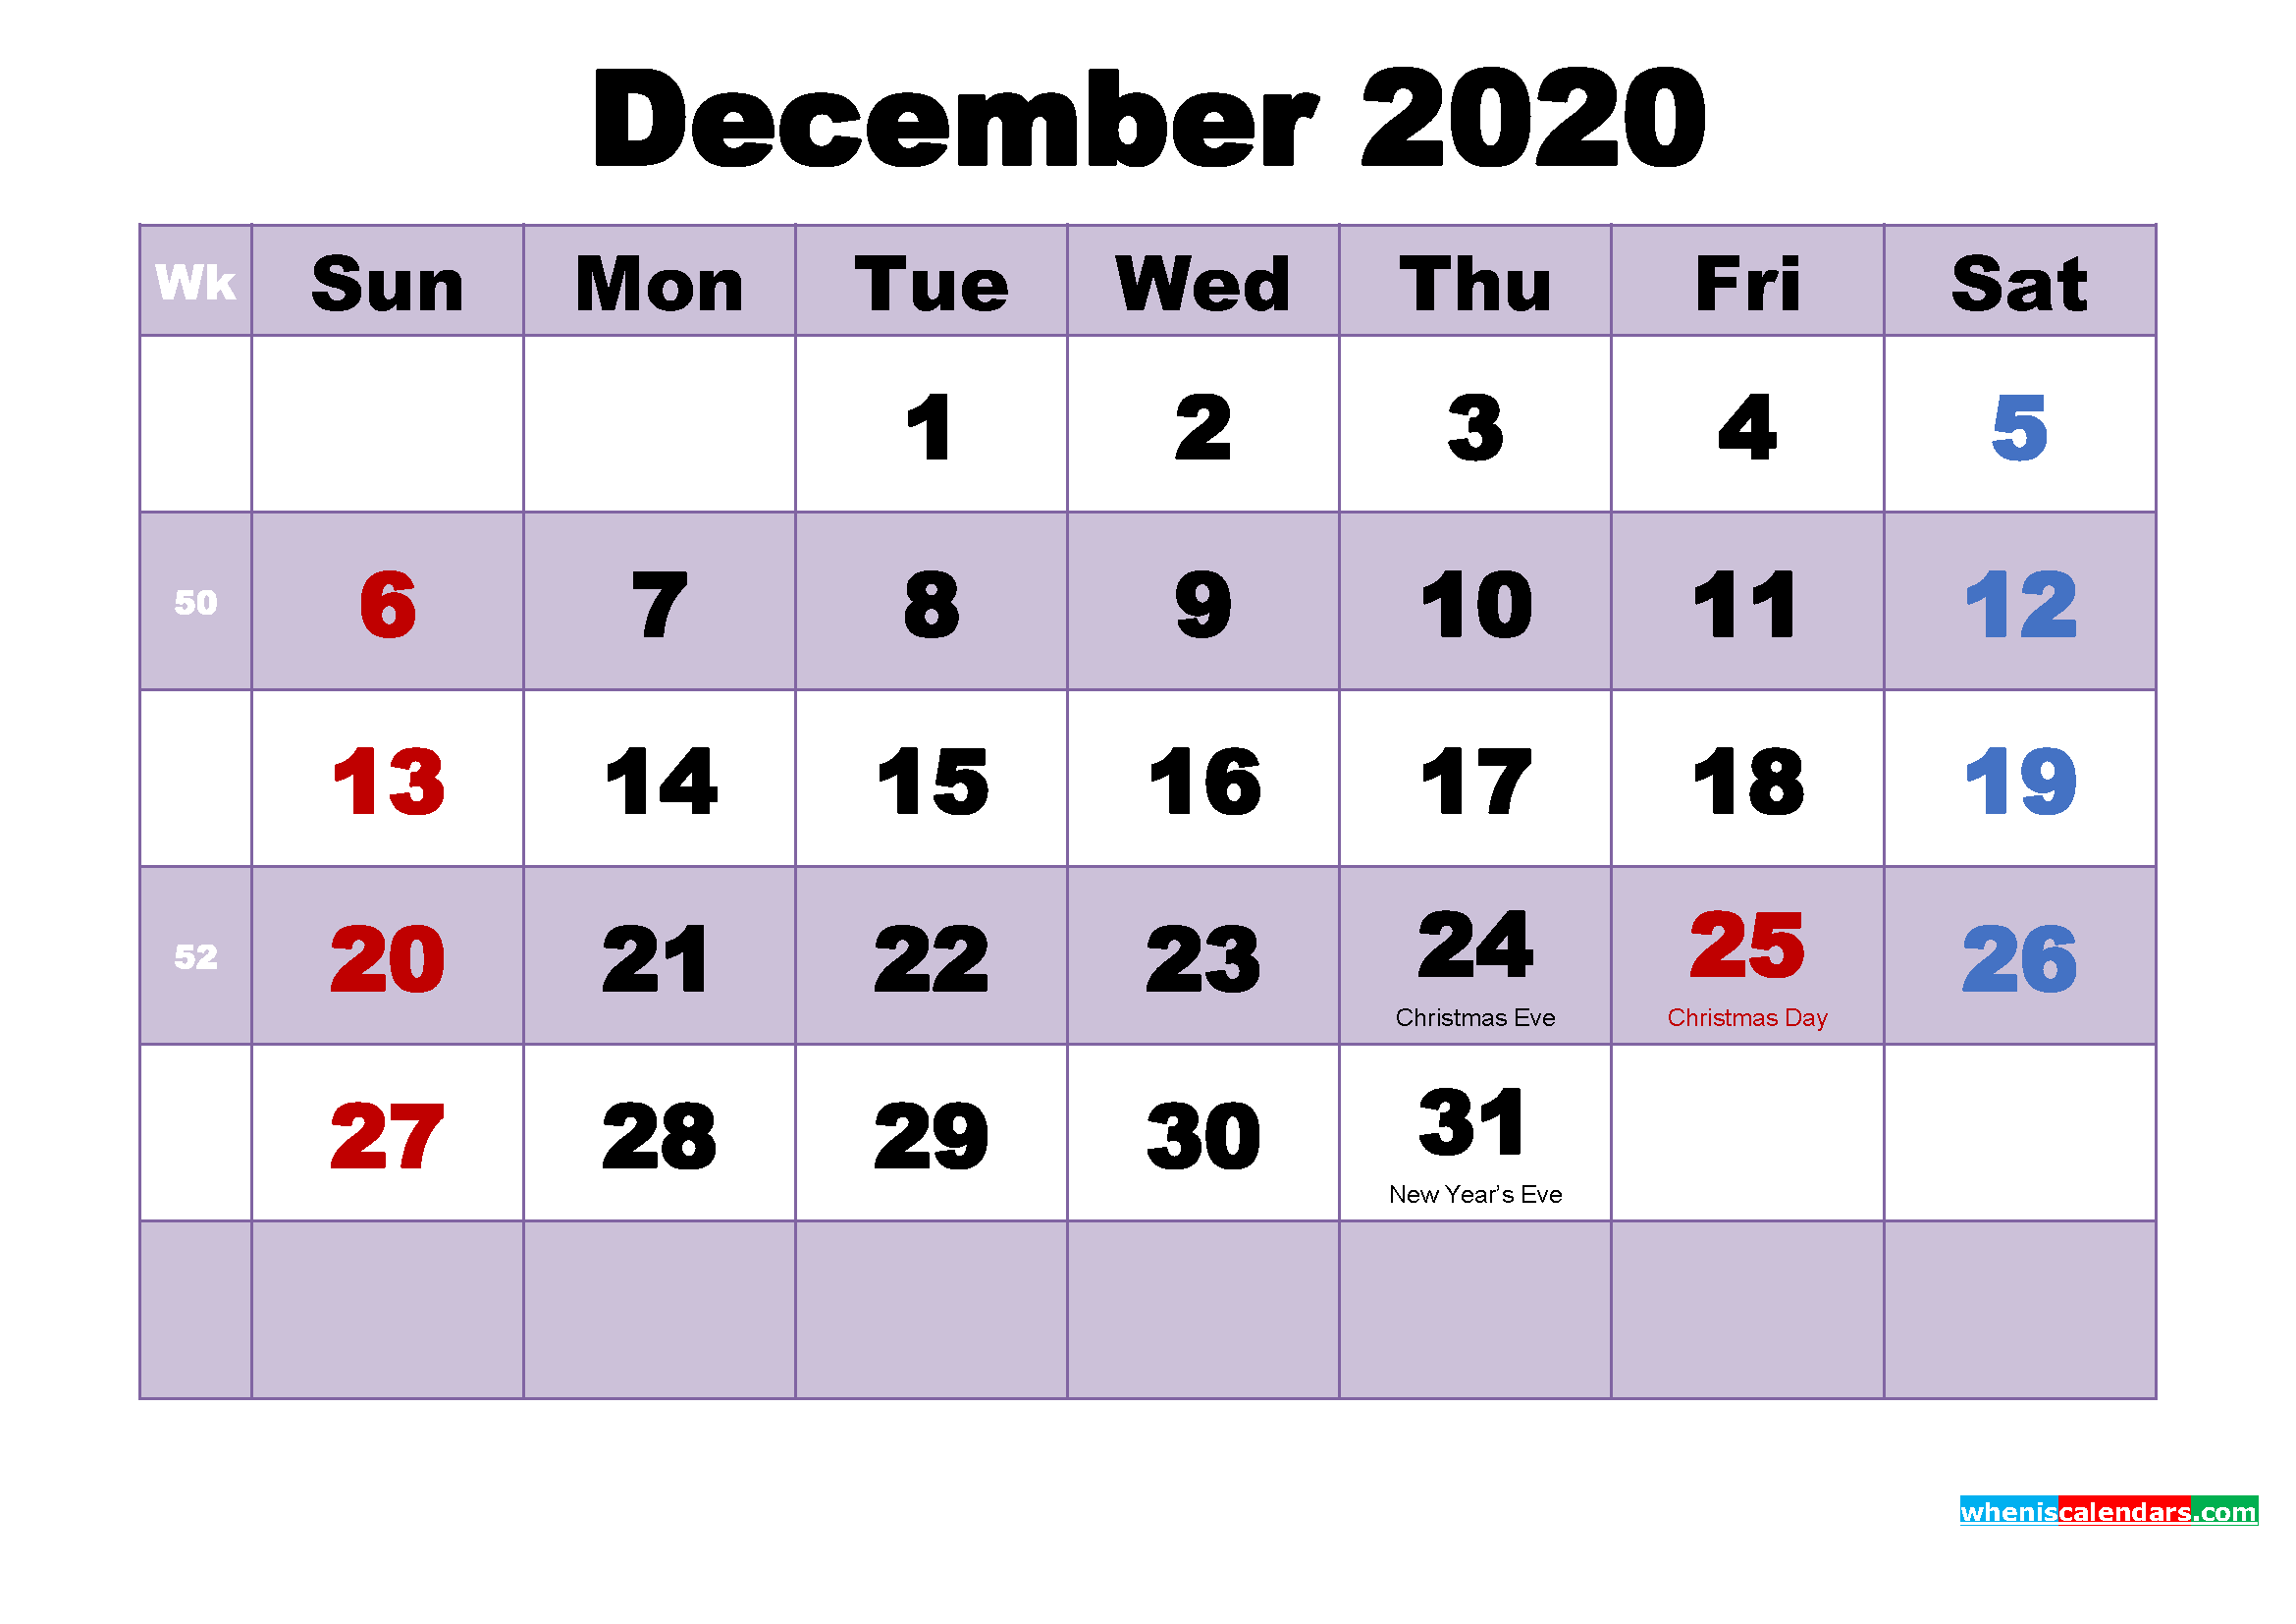 Free 2020 Printable Calendar December as Word, PDF